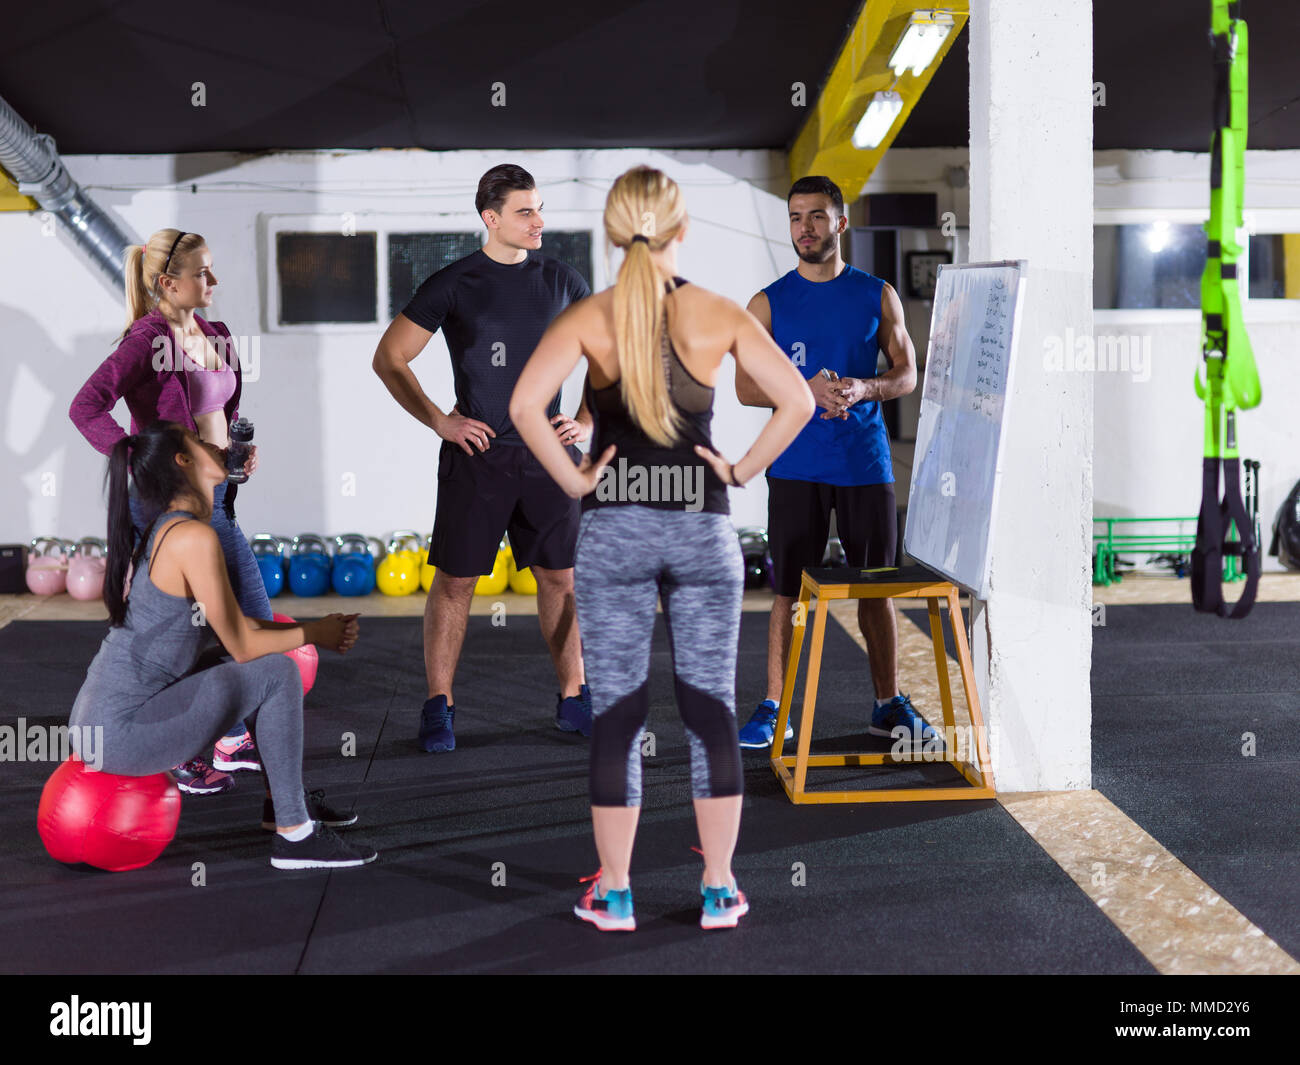 Crossfit Training Courseoup Of Young Athletes Getting